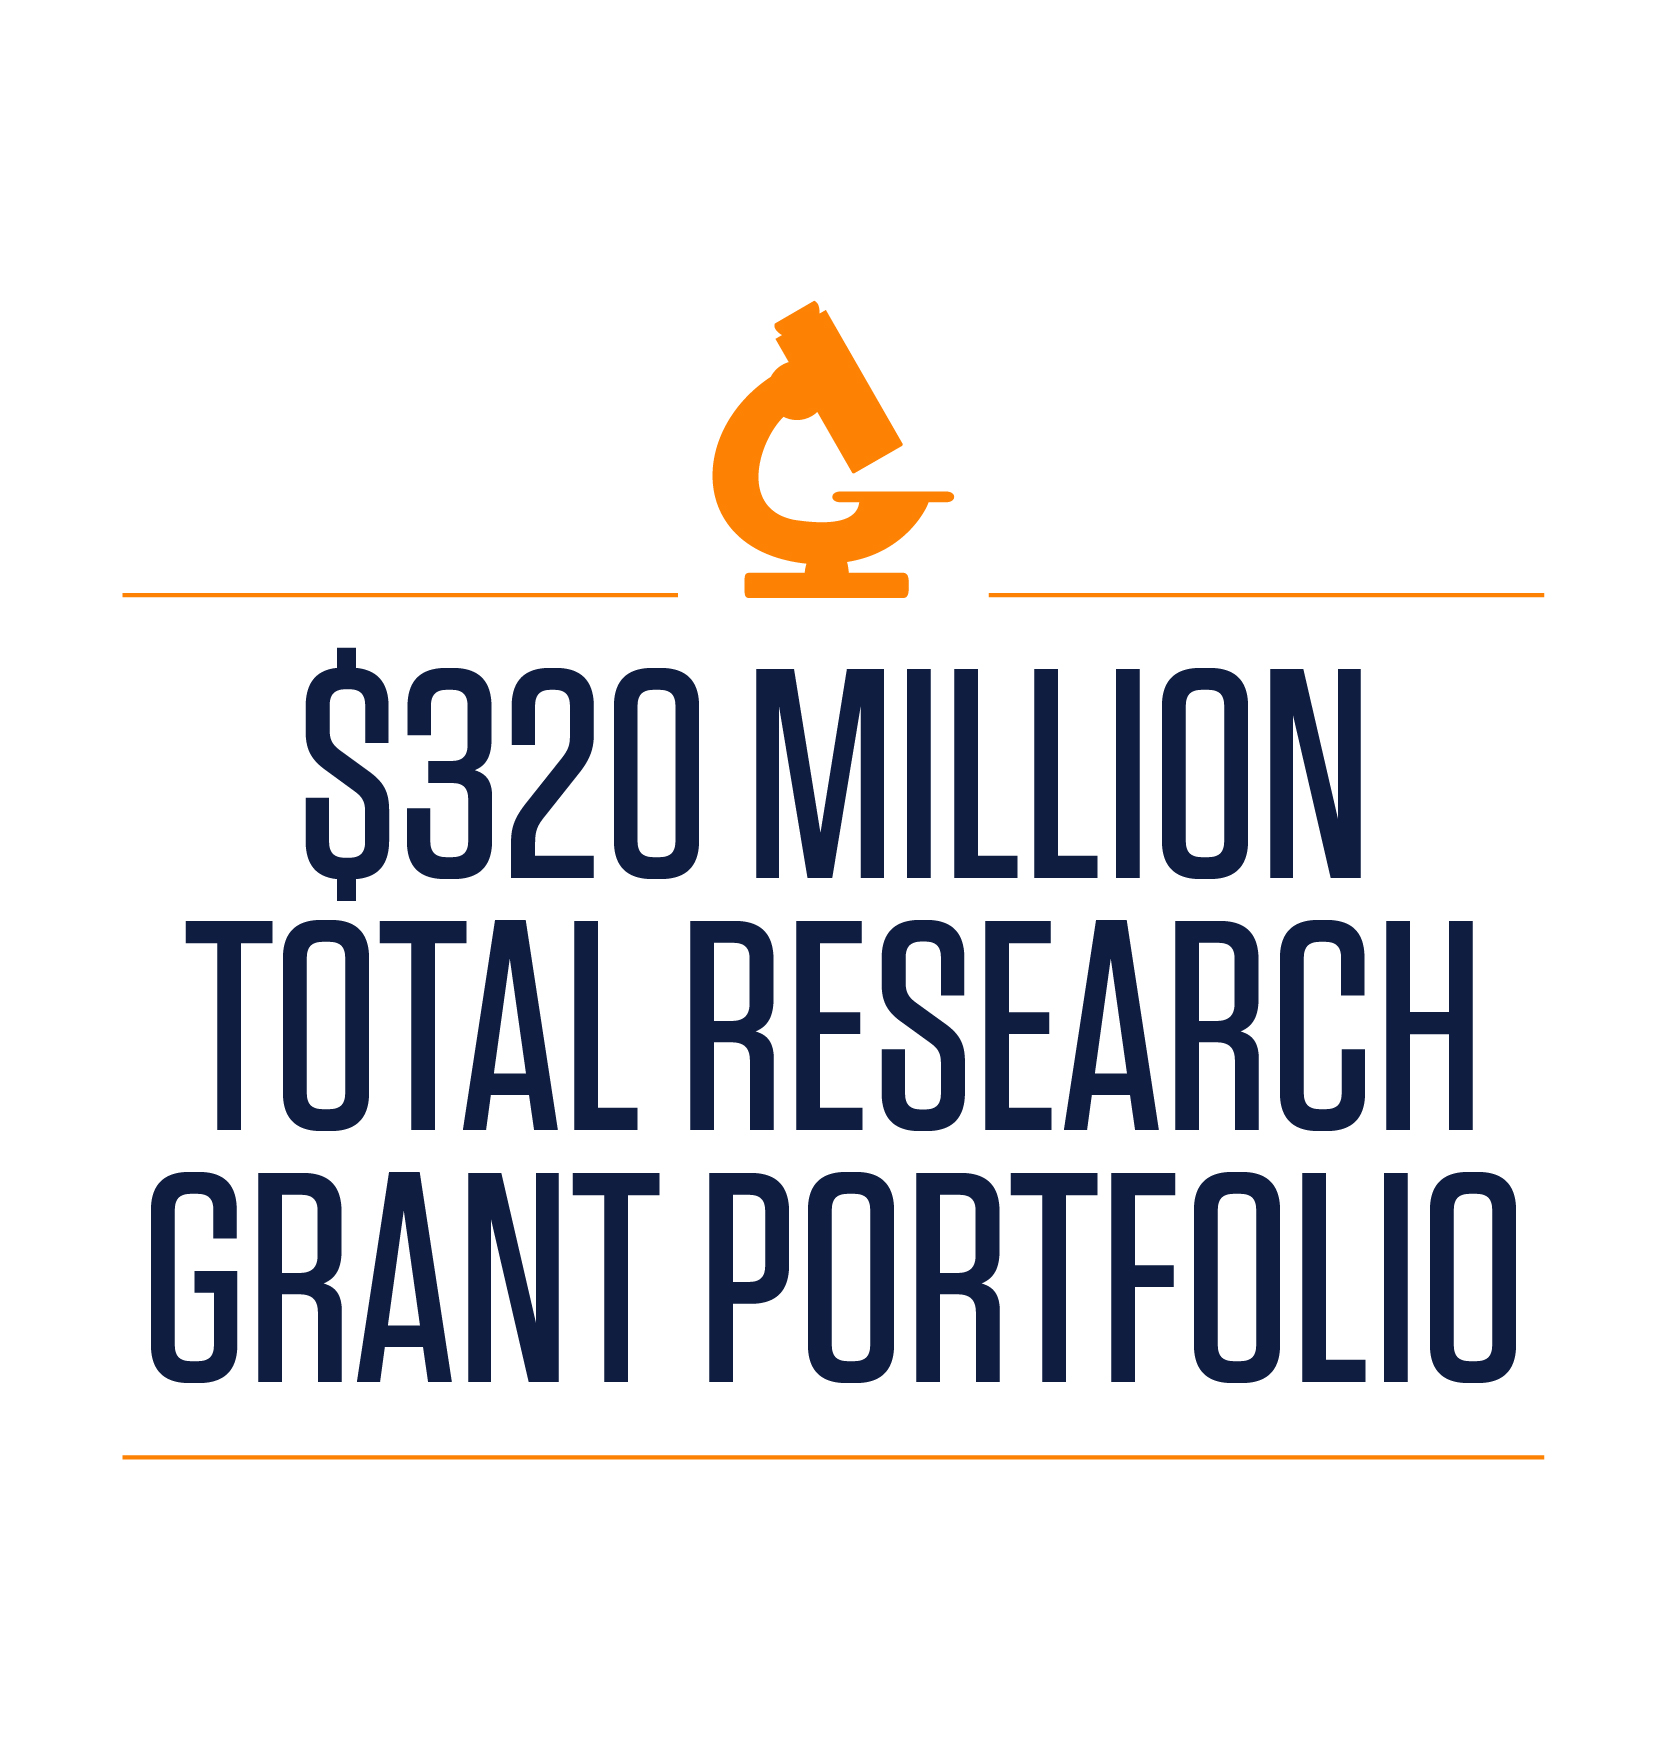 the university of texas at el paso 320 million total research grant portfolio